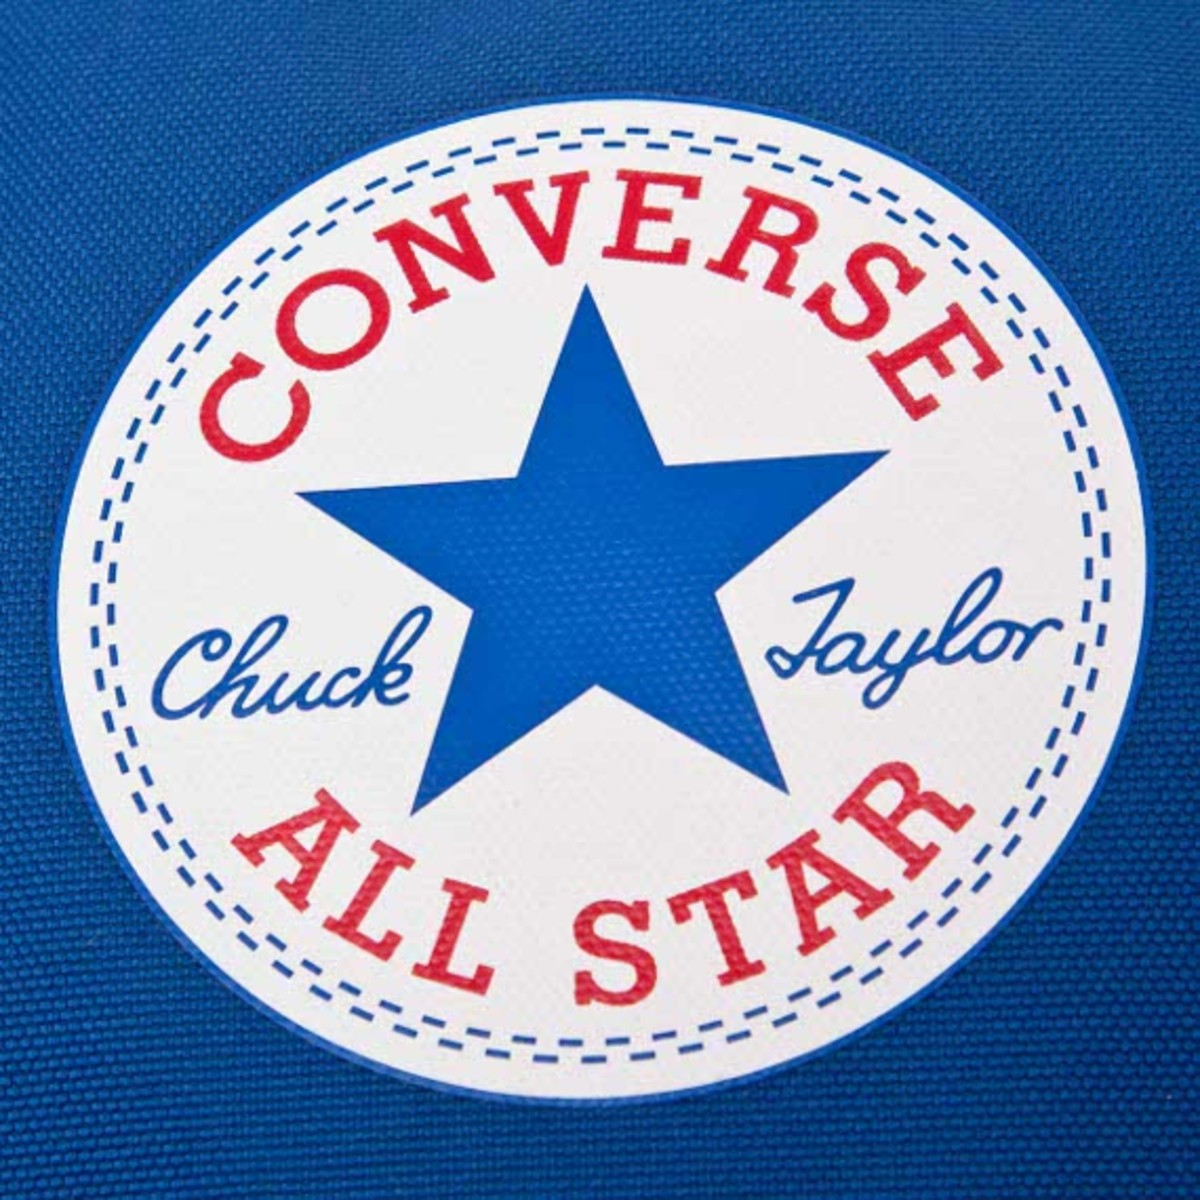 converse-bag-collection-14